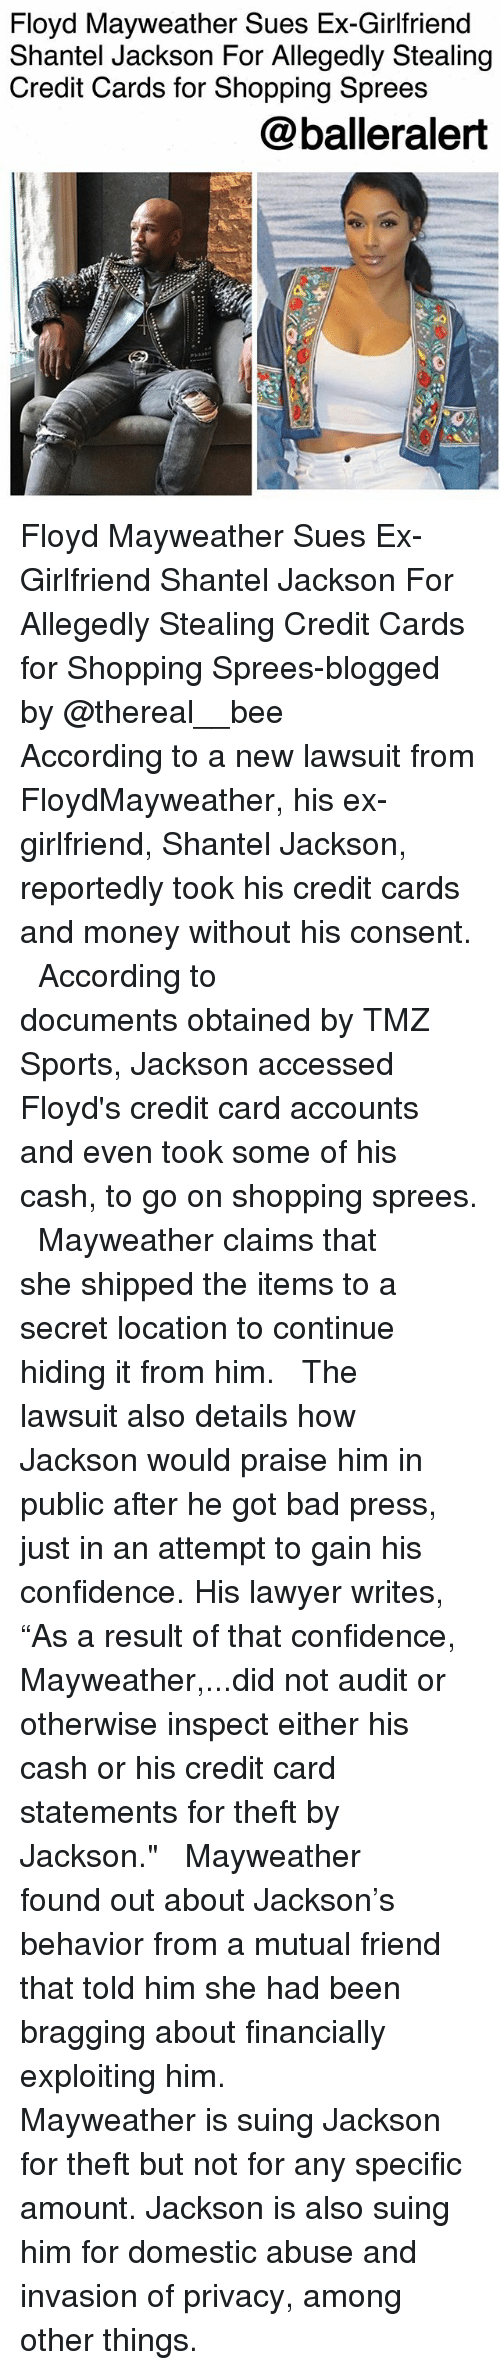 """Bad, Confidence, and Floyd Mayweather: Floyd Mayweather Sues Ex-Girlfriend  Shantel Jackson For Allegedly Stealing  Credit Cards for Shopping Sprees  @balleralert Floyd Mayweather Sues Ex-Girlfriend Shantel Jackson For Allegedly Stealing Credit Cards for Shopping Sprees-blogged by @thereal__bee ⠀⠀⠀⠀⠀⠀⠀⠀⠀ ⠀⠀ According to a new lawsuit from FloydMayweather, his ex-girlfriend, Shantel Jackson, reportedly took his credit cards and money without his consent. ⠀⠀⠀⠀⠀⠀⠀⠀⠀ ⠀⠀ According to documents obtained by TMZ Sports, Jackson accessed Floyd's credit card accounts and even took some of his cash, to go on shopping sprees. ⠀⠀⠀⠀⠀⠀⠀⠀⠀ ⠀⠀ Mayweather claims that she shipped the items to a secret location to continue hiding it from him. ⠀⠀⠀⠀⠀⠀⠀⠀⠀ ⠀⠀ The lawsuit also details how Jackson would praise him in public after he got bad press, just in an attempt to gain his confidence. His lawyer writes, """"As a result of that confidence, Mayweather,...did not audit or otherwise inspect either his cash or his credit card statements for theft by Jackson."""" ⠀⠀⠀⠀⠀⠀⠀⠀⠀ ⠀⠀ Mayweather found out about Jackson's behavior from a mutual friend that told him she had been bragging about financially exploiting him. ⠀⠀⠀⠀⠀⠀⠀⠀⠀ ⠀⠀ Mayweather is suing Jackson for theft but not for any specific amount. Jackson is also suing him for domestic abuse and invasion of privacy, among other things."""